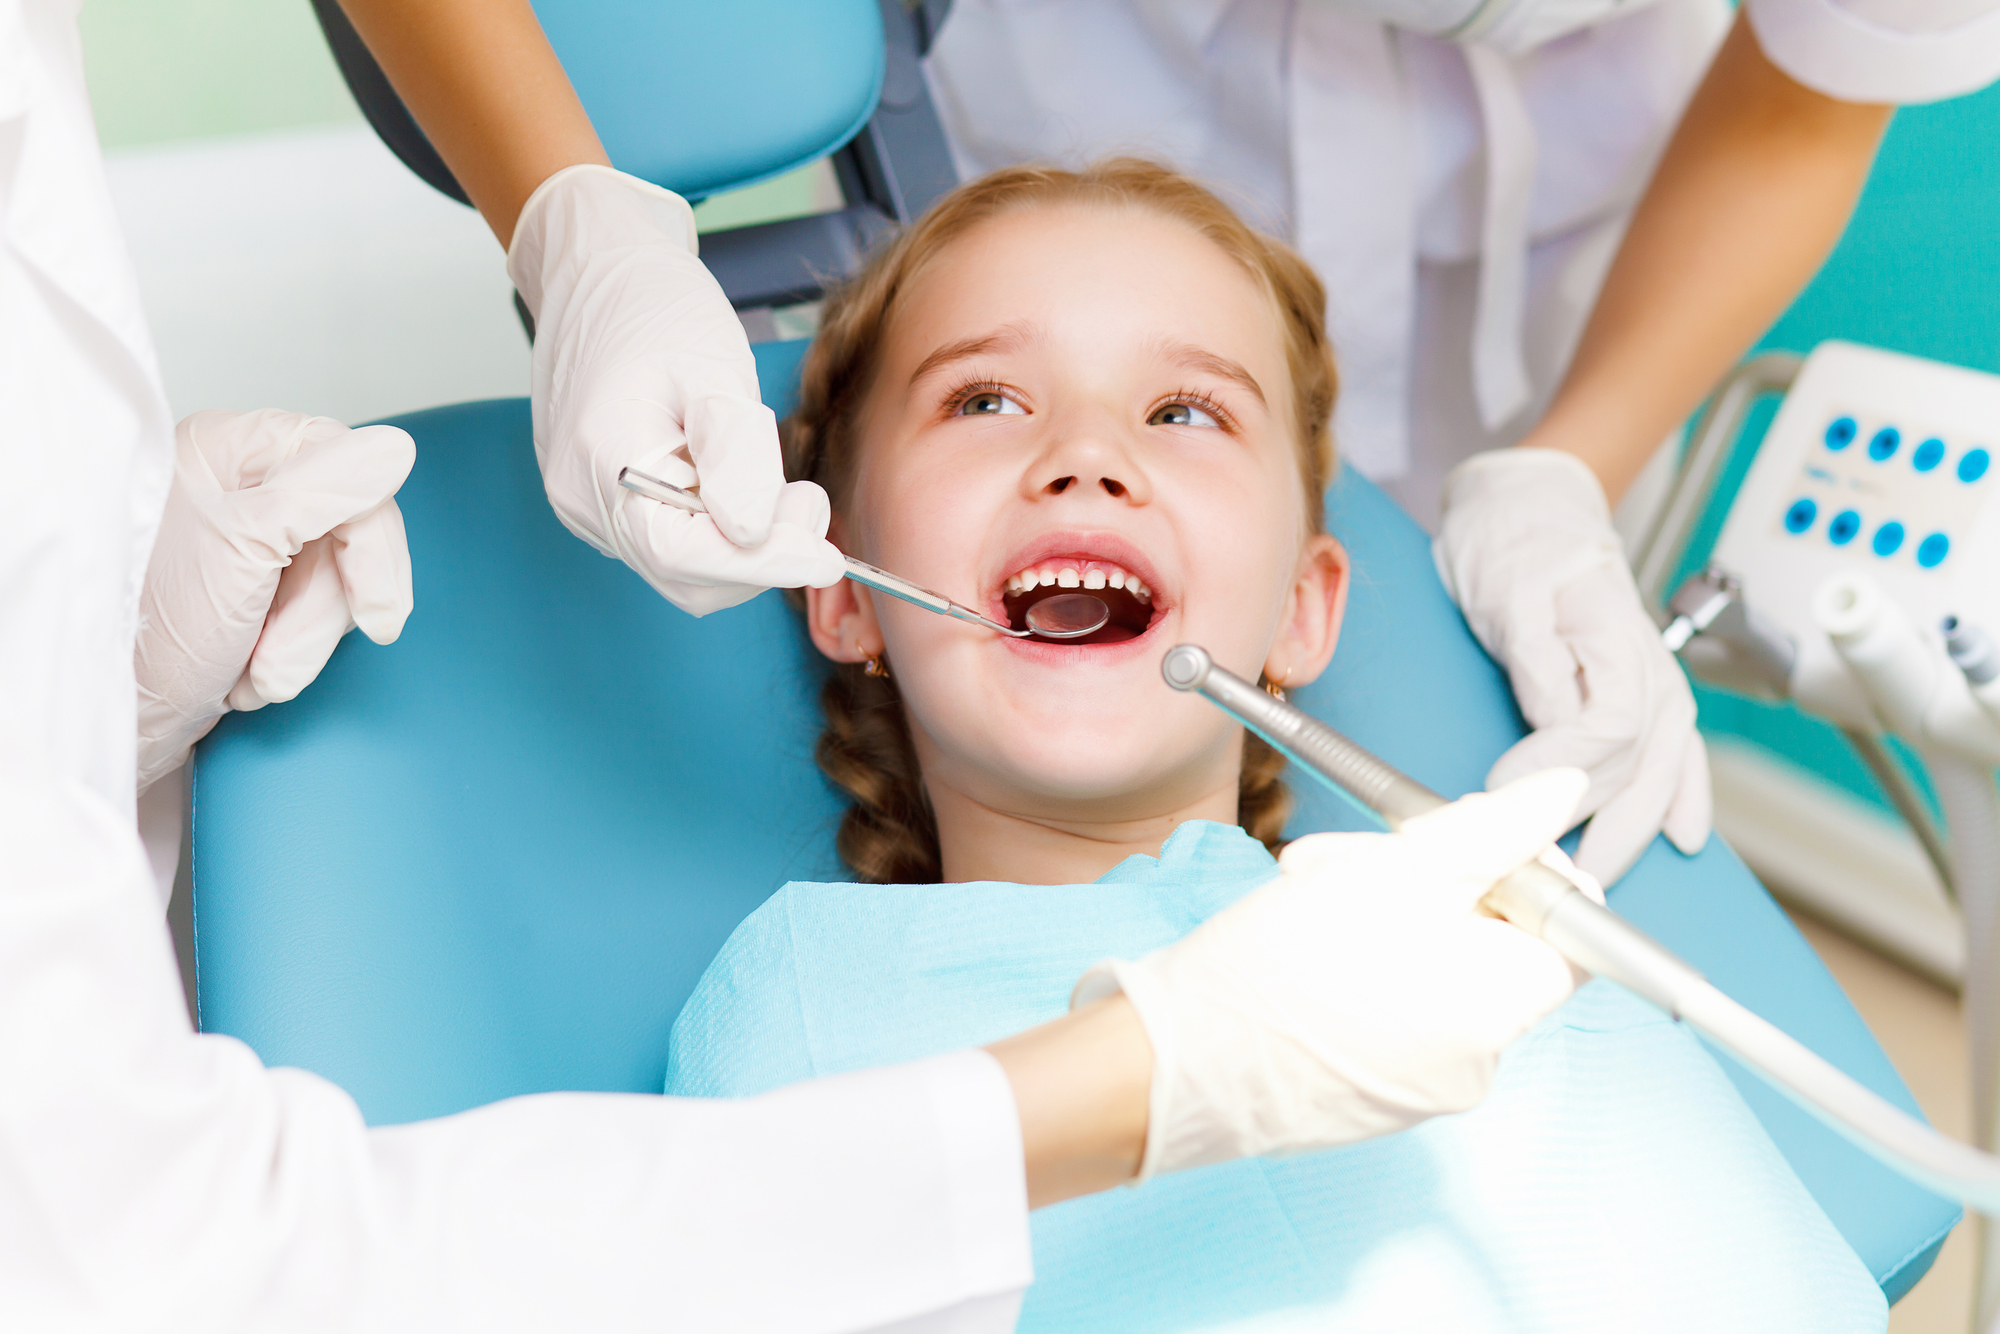 who offers the best dentist orlando?